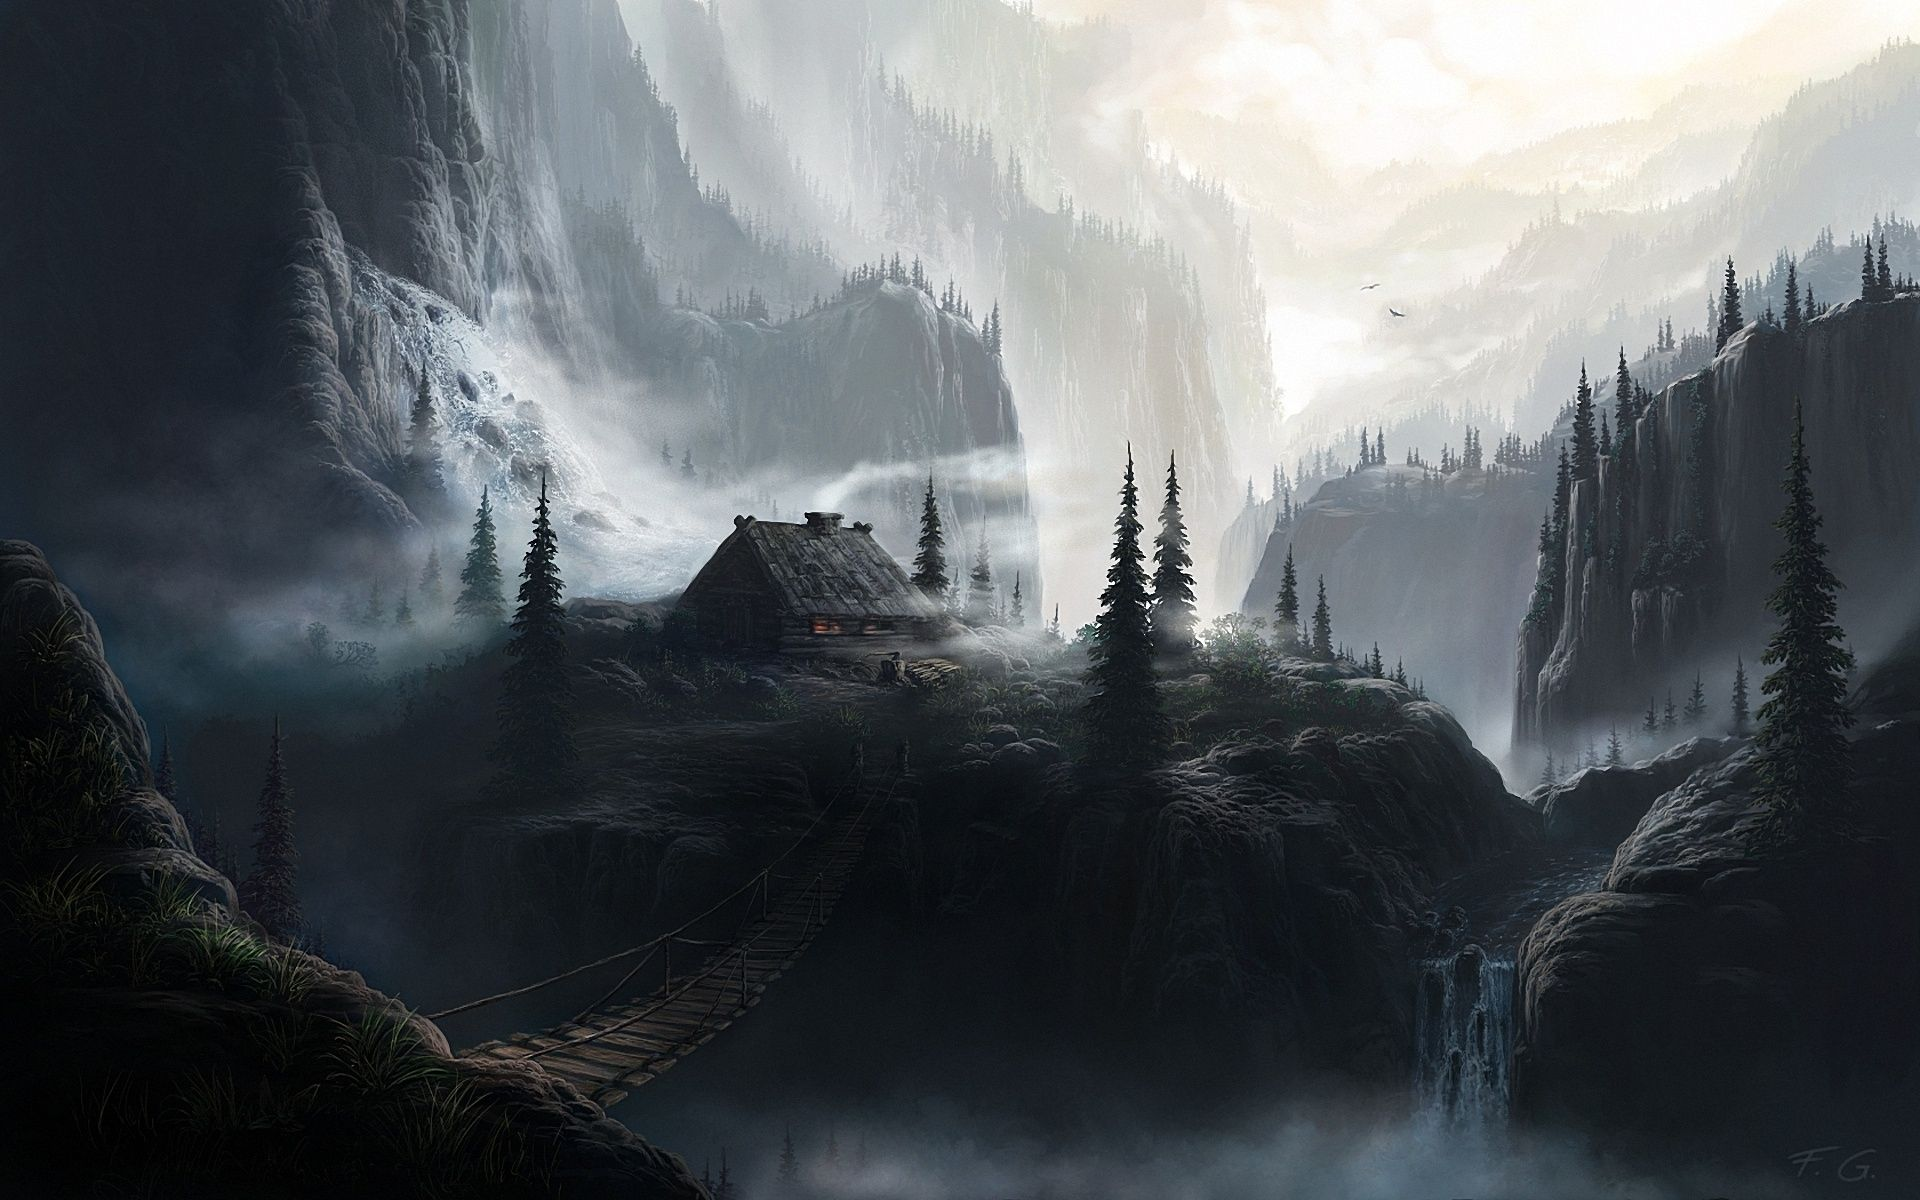 Dark Mountain Cabin Fantasy Landscape Landscape Wallpaper